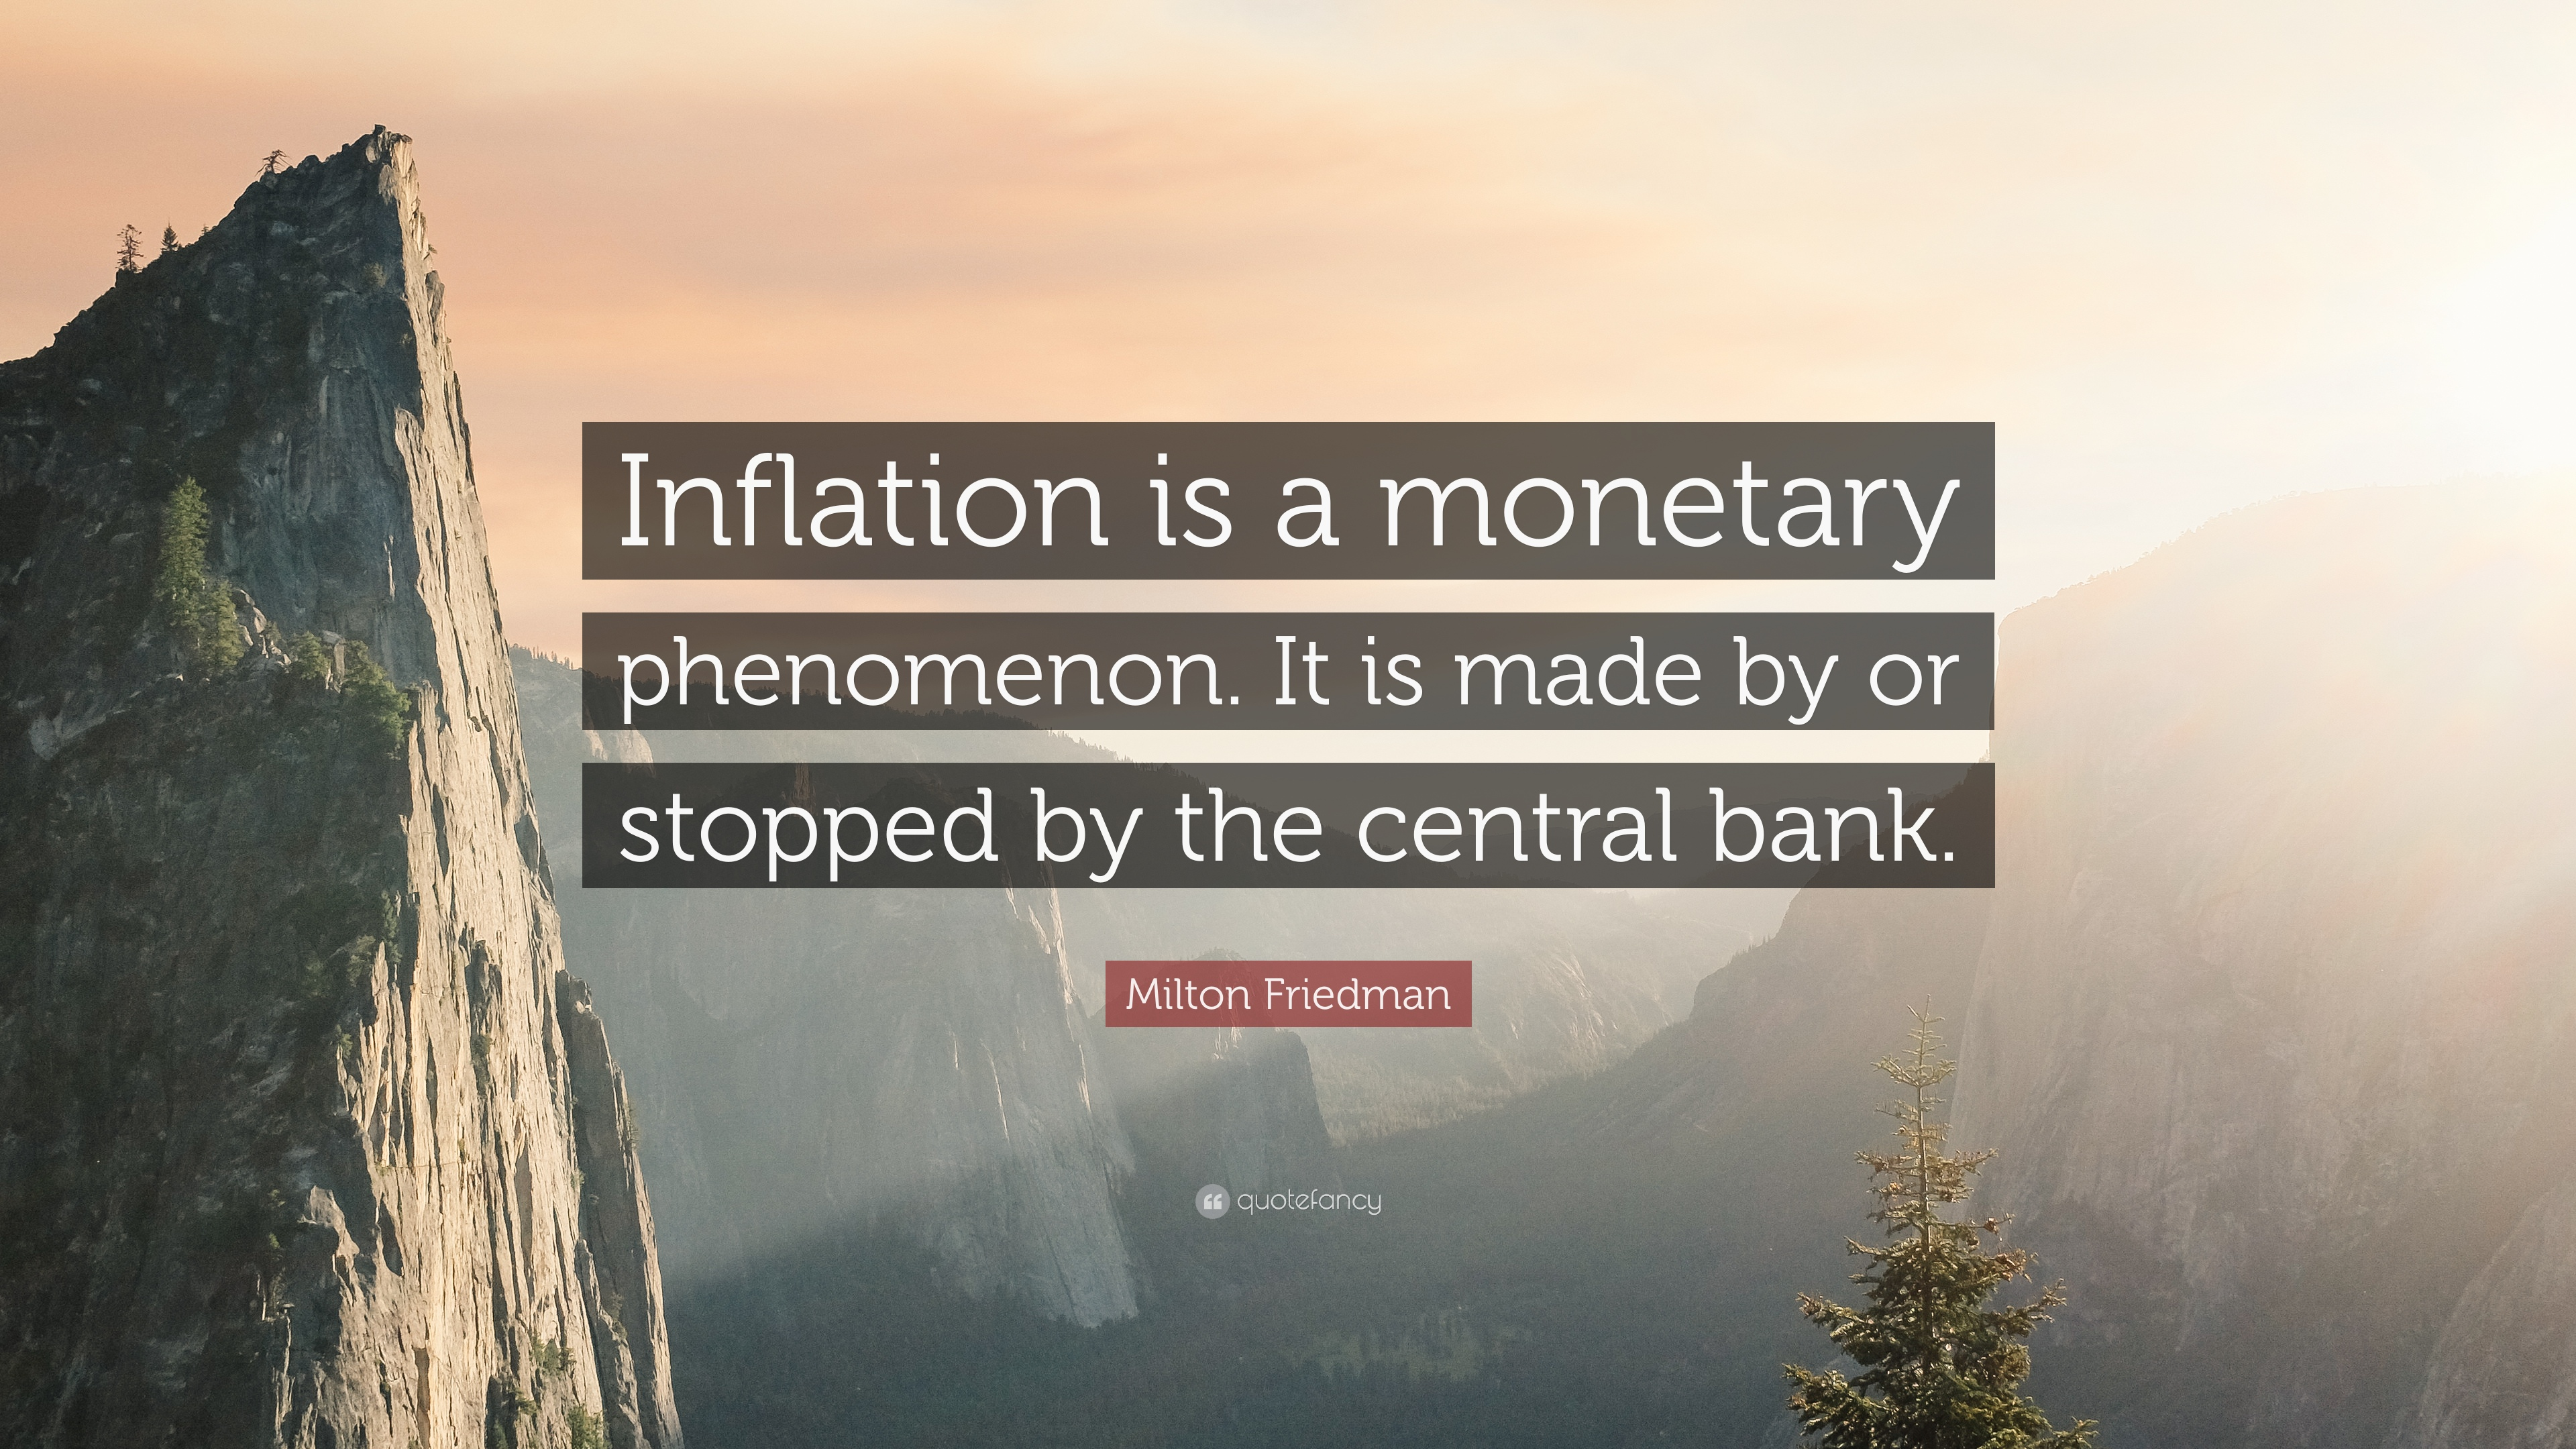 who made the statement inflation is everywhere and always a monetary phenomenon